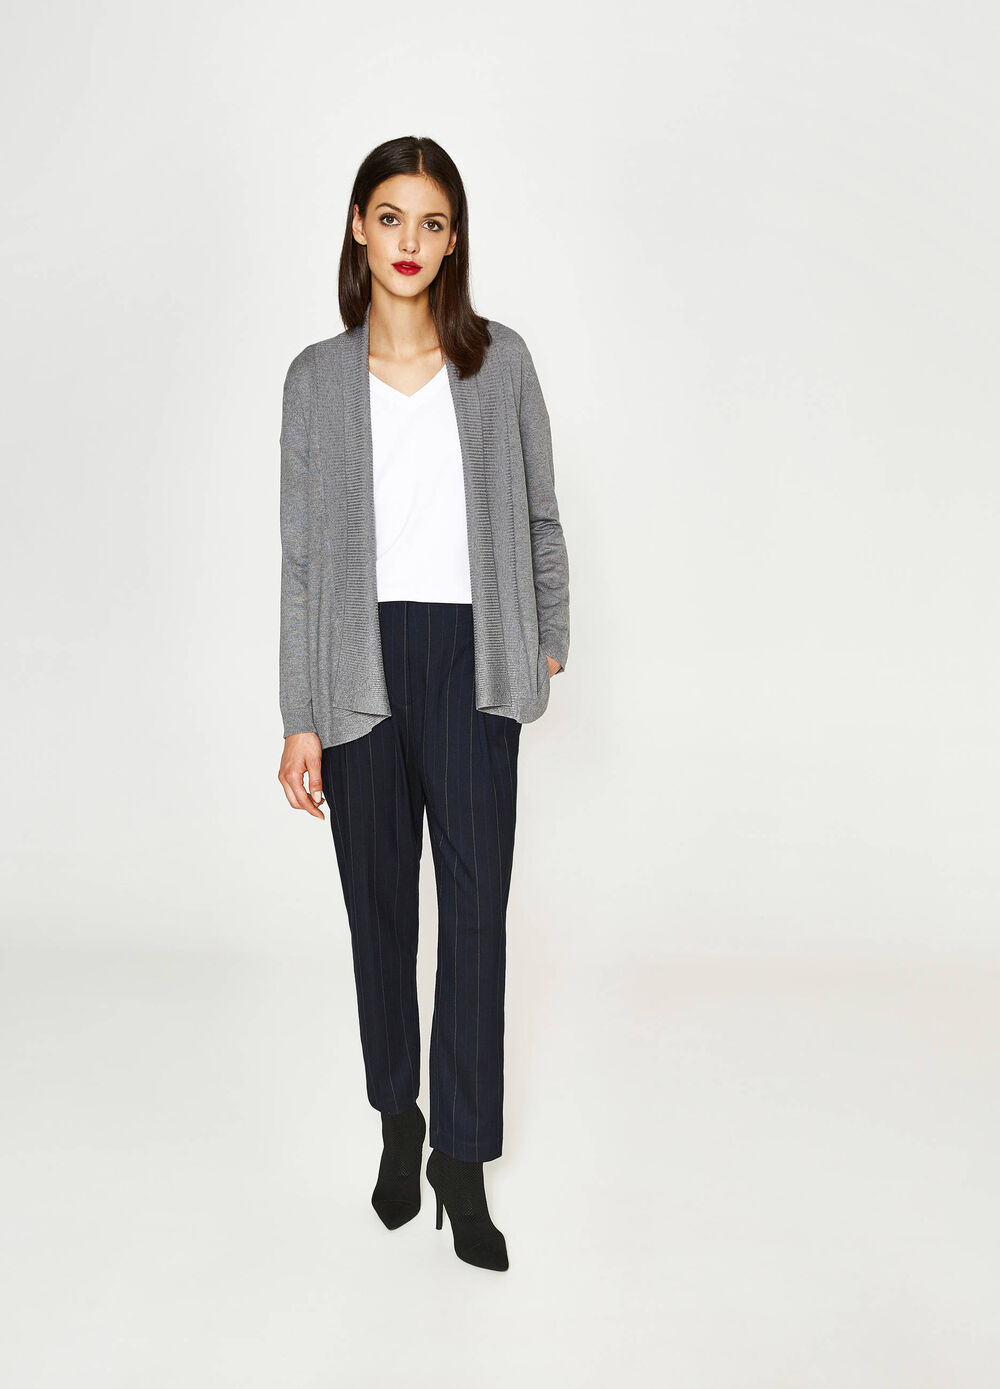 Shawl-neck viscose blend cardigan